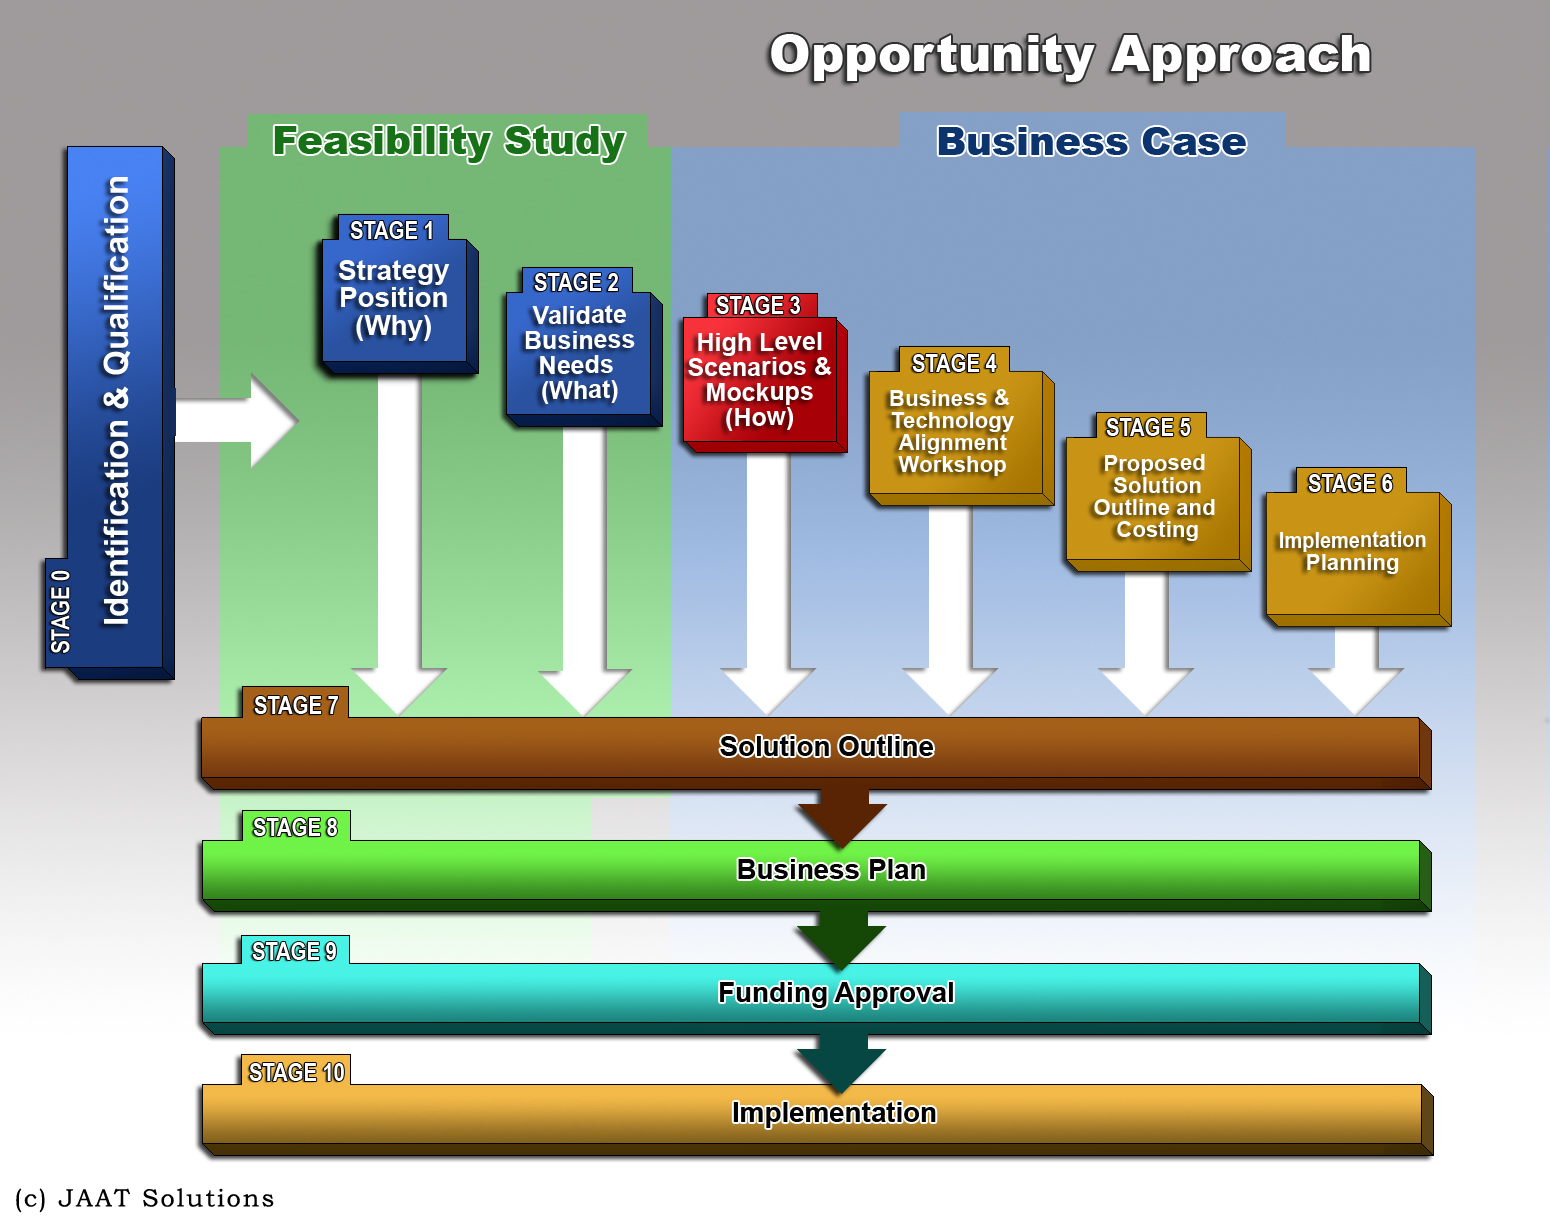 Opportunity Approach